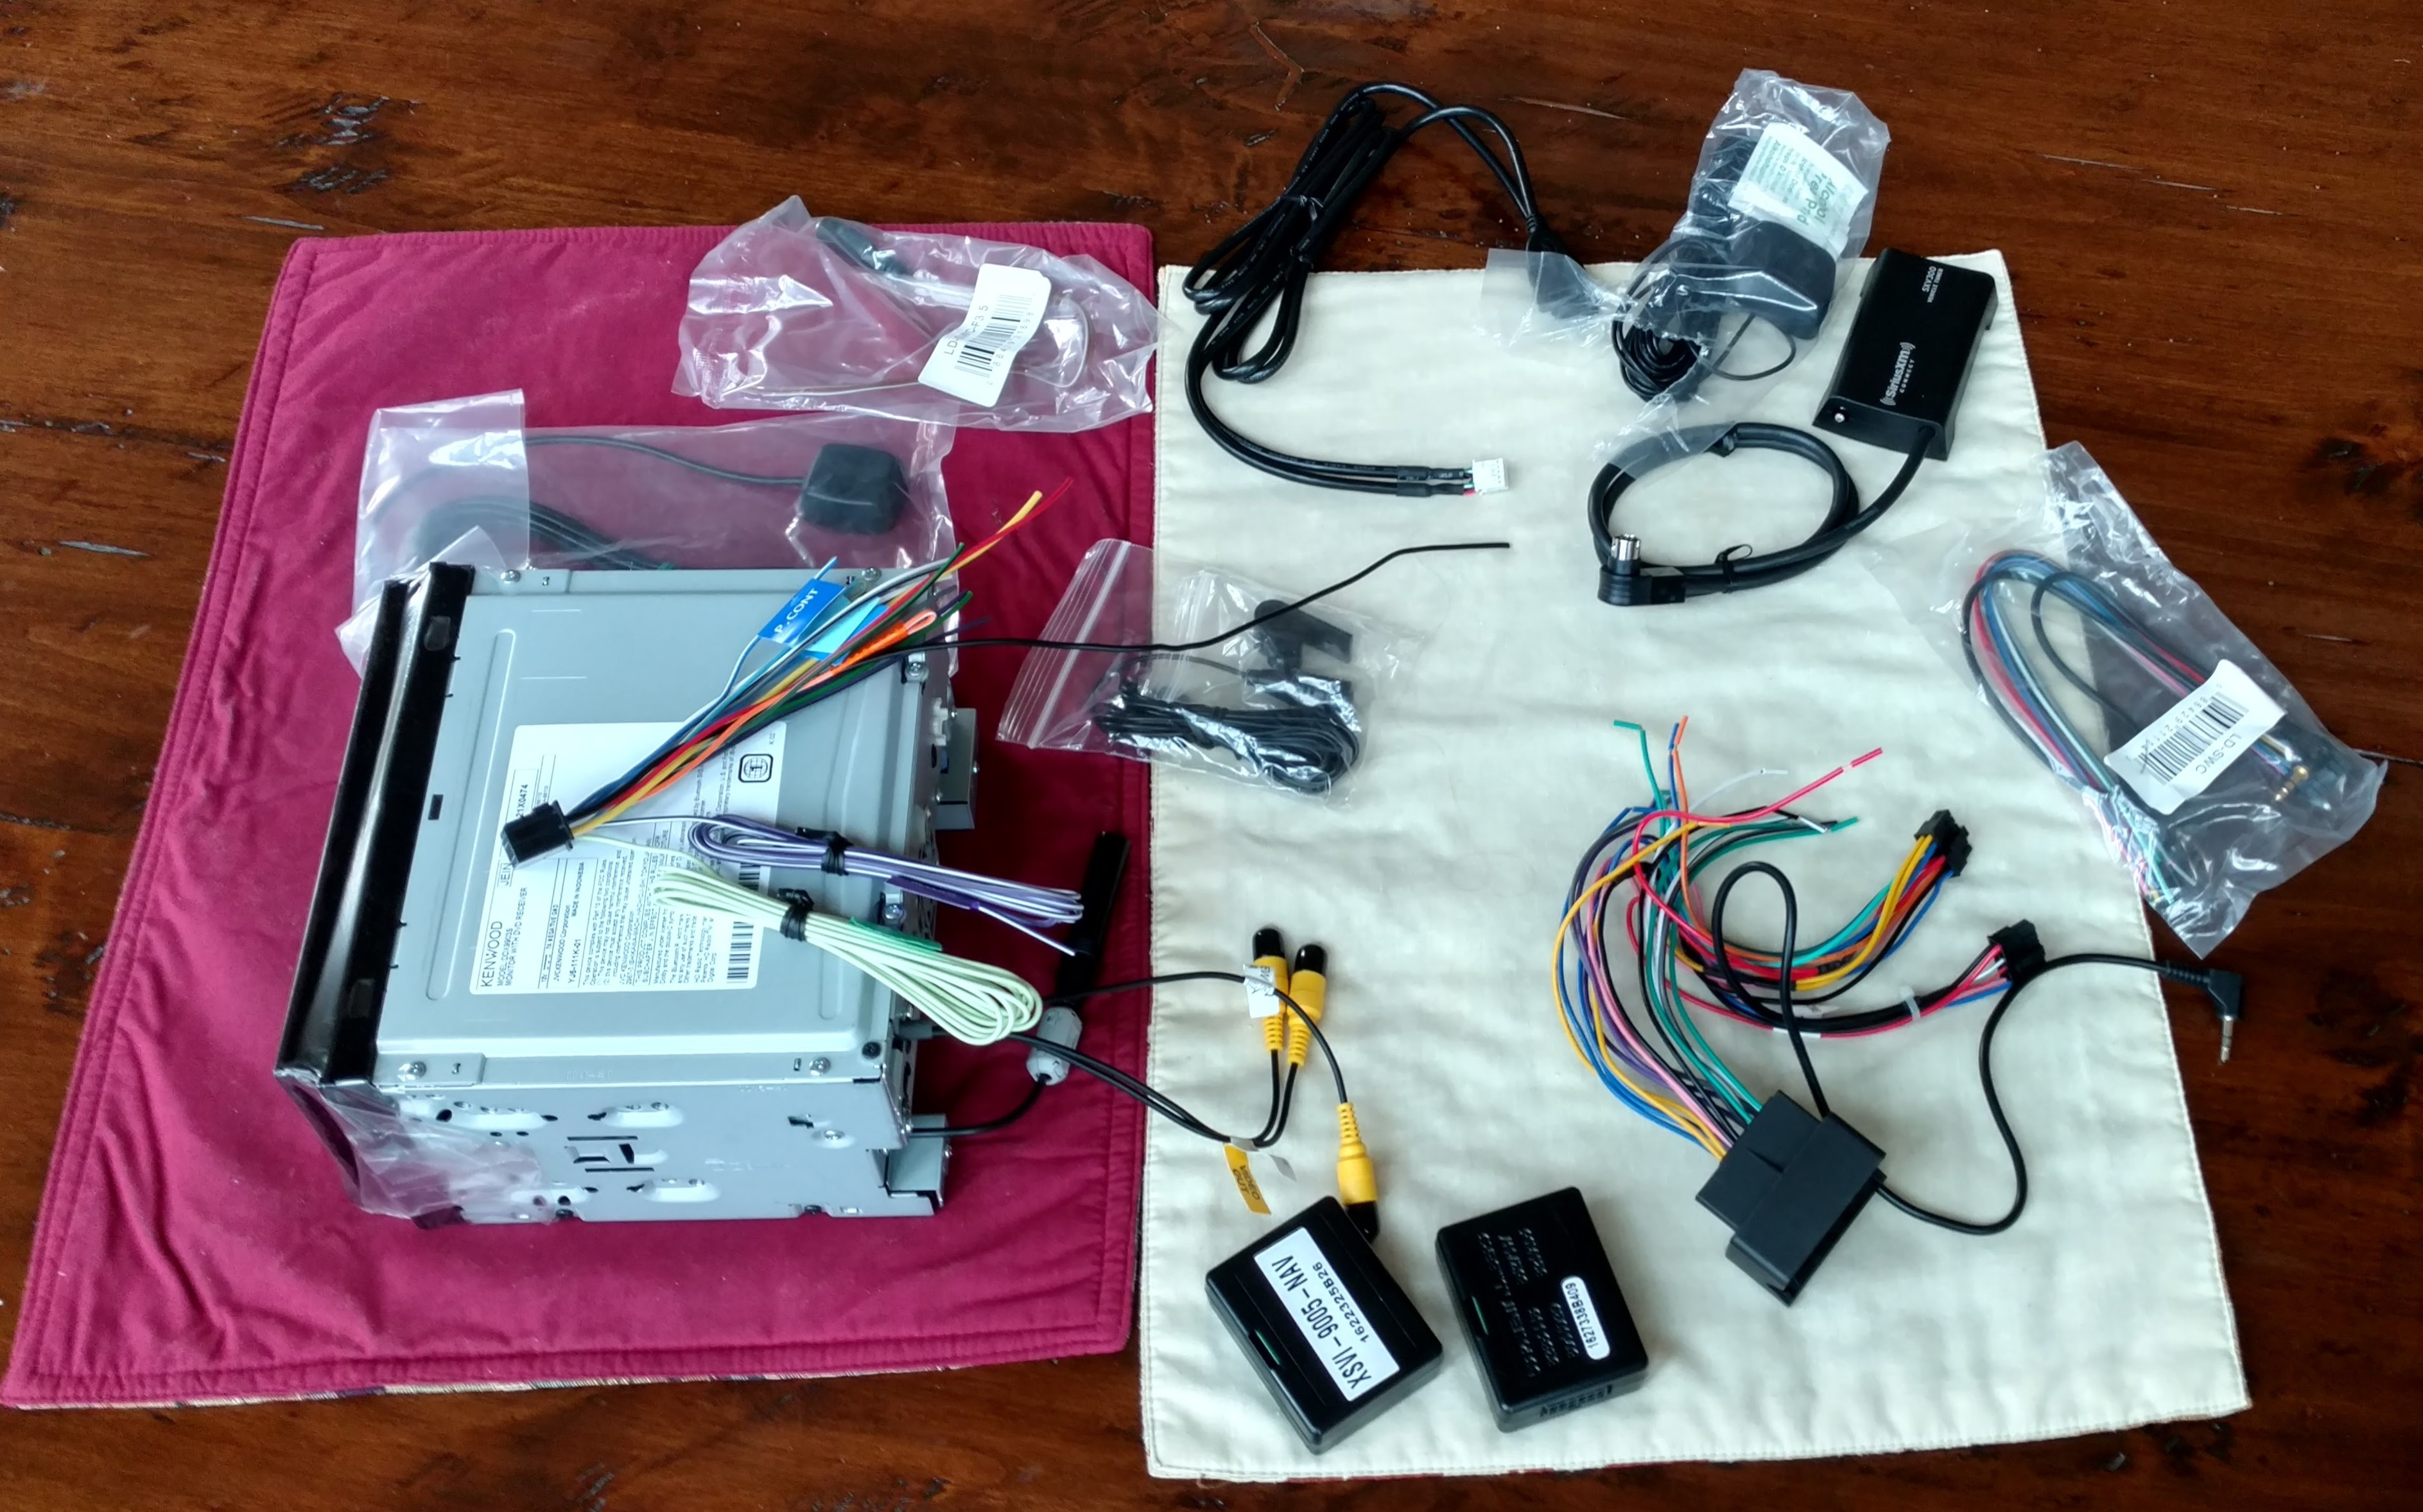 DIY Stereo upgrade and install in a Sprinter - RidingRoadsAndTrails